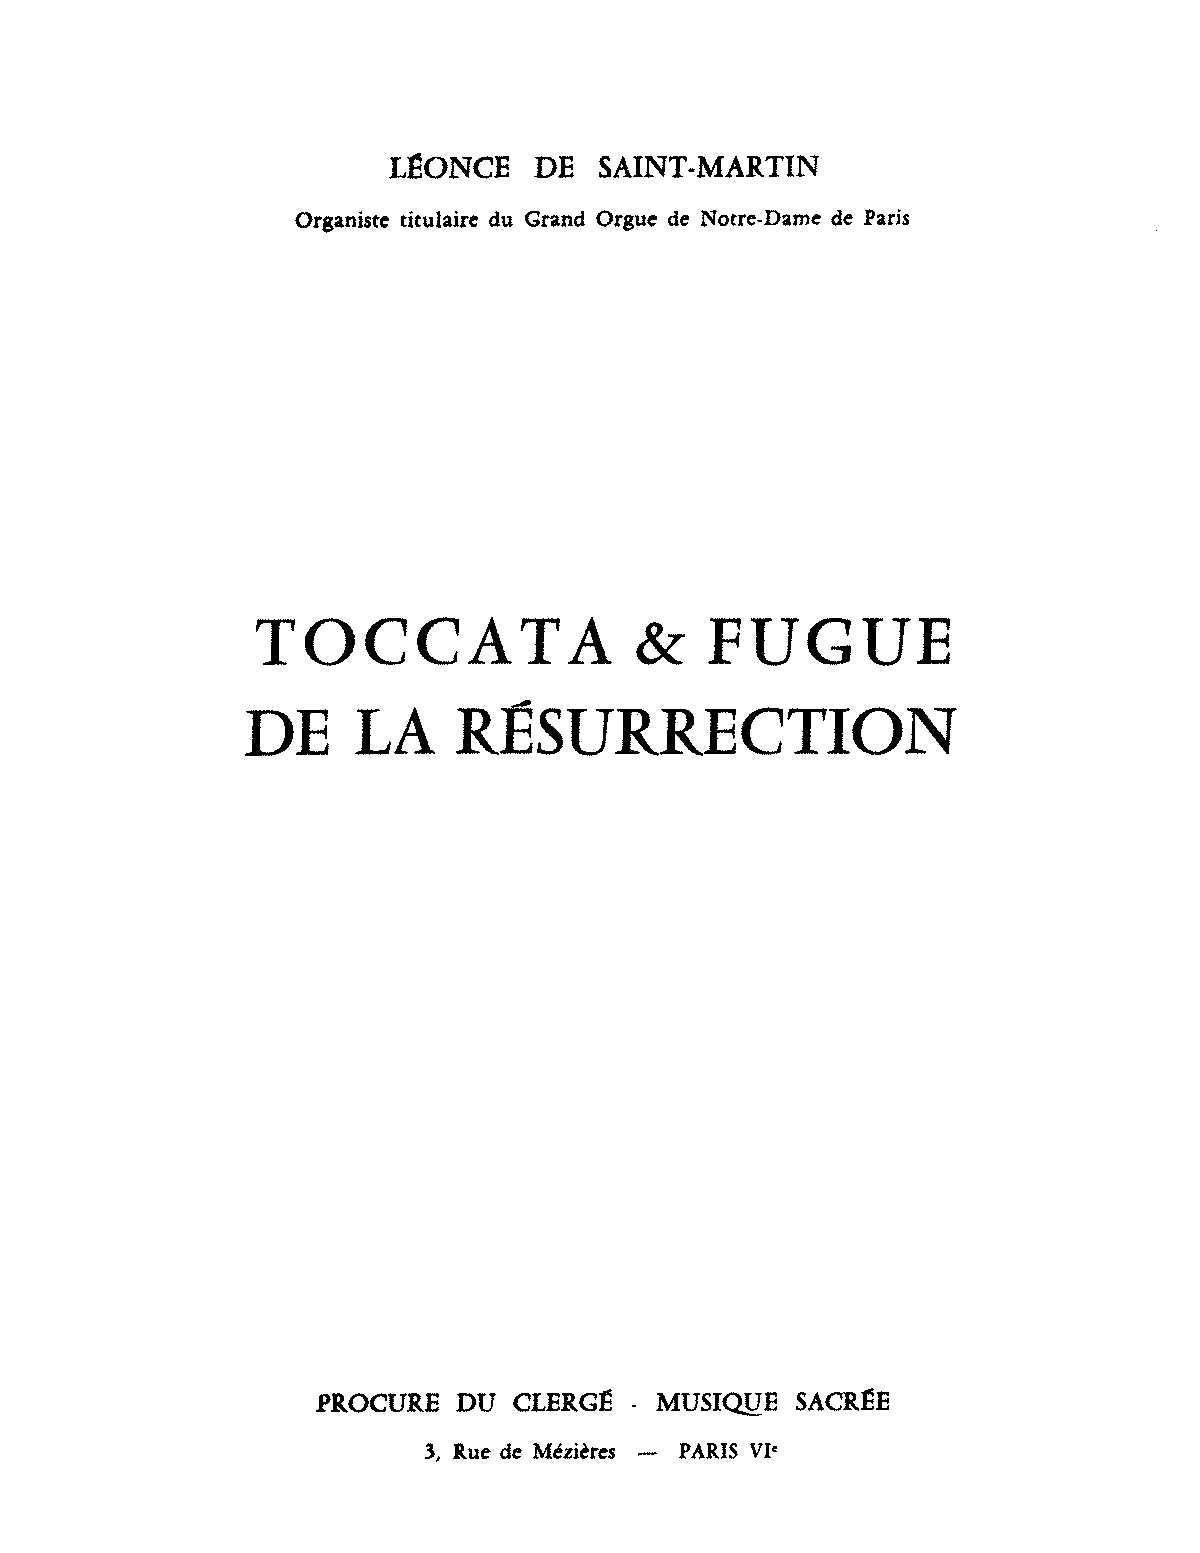 PMLP565306-Saint-Martin Toccata & Fugue de la Résurrection.pdf